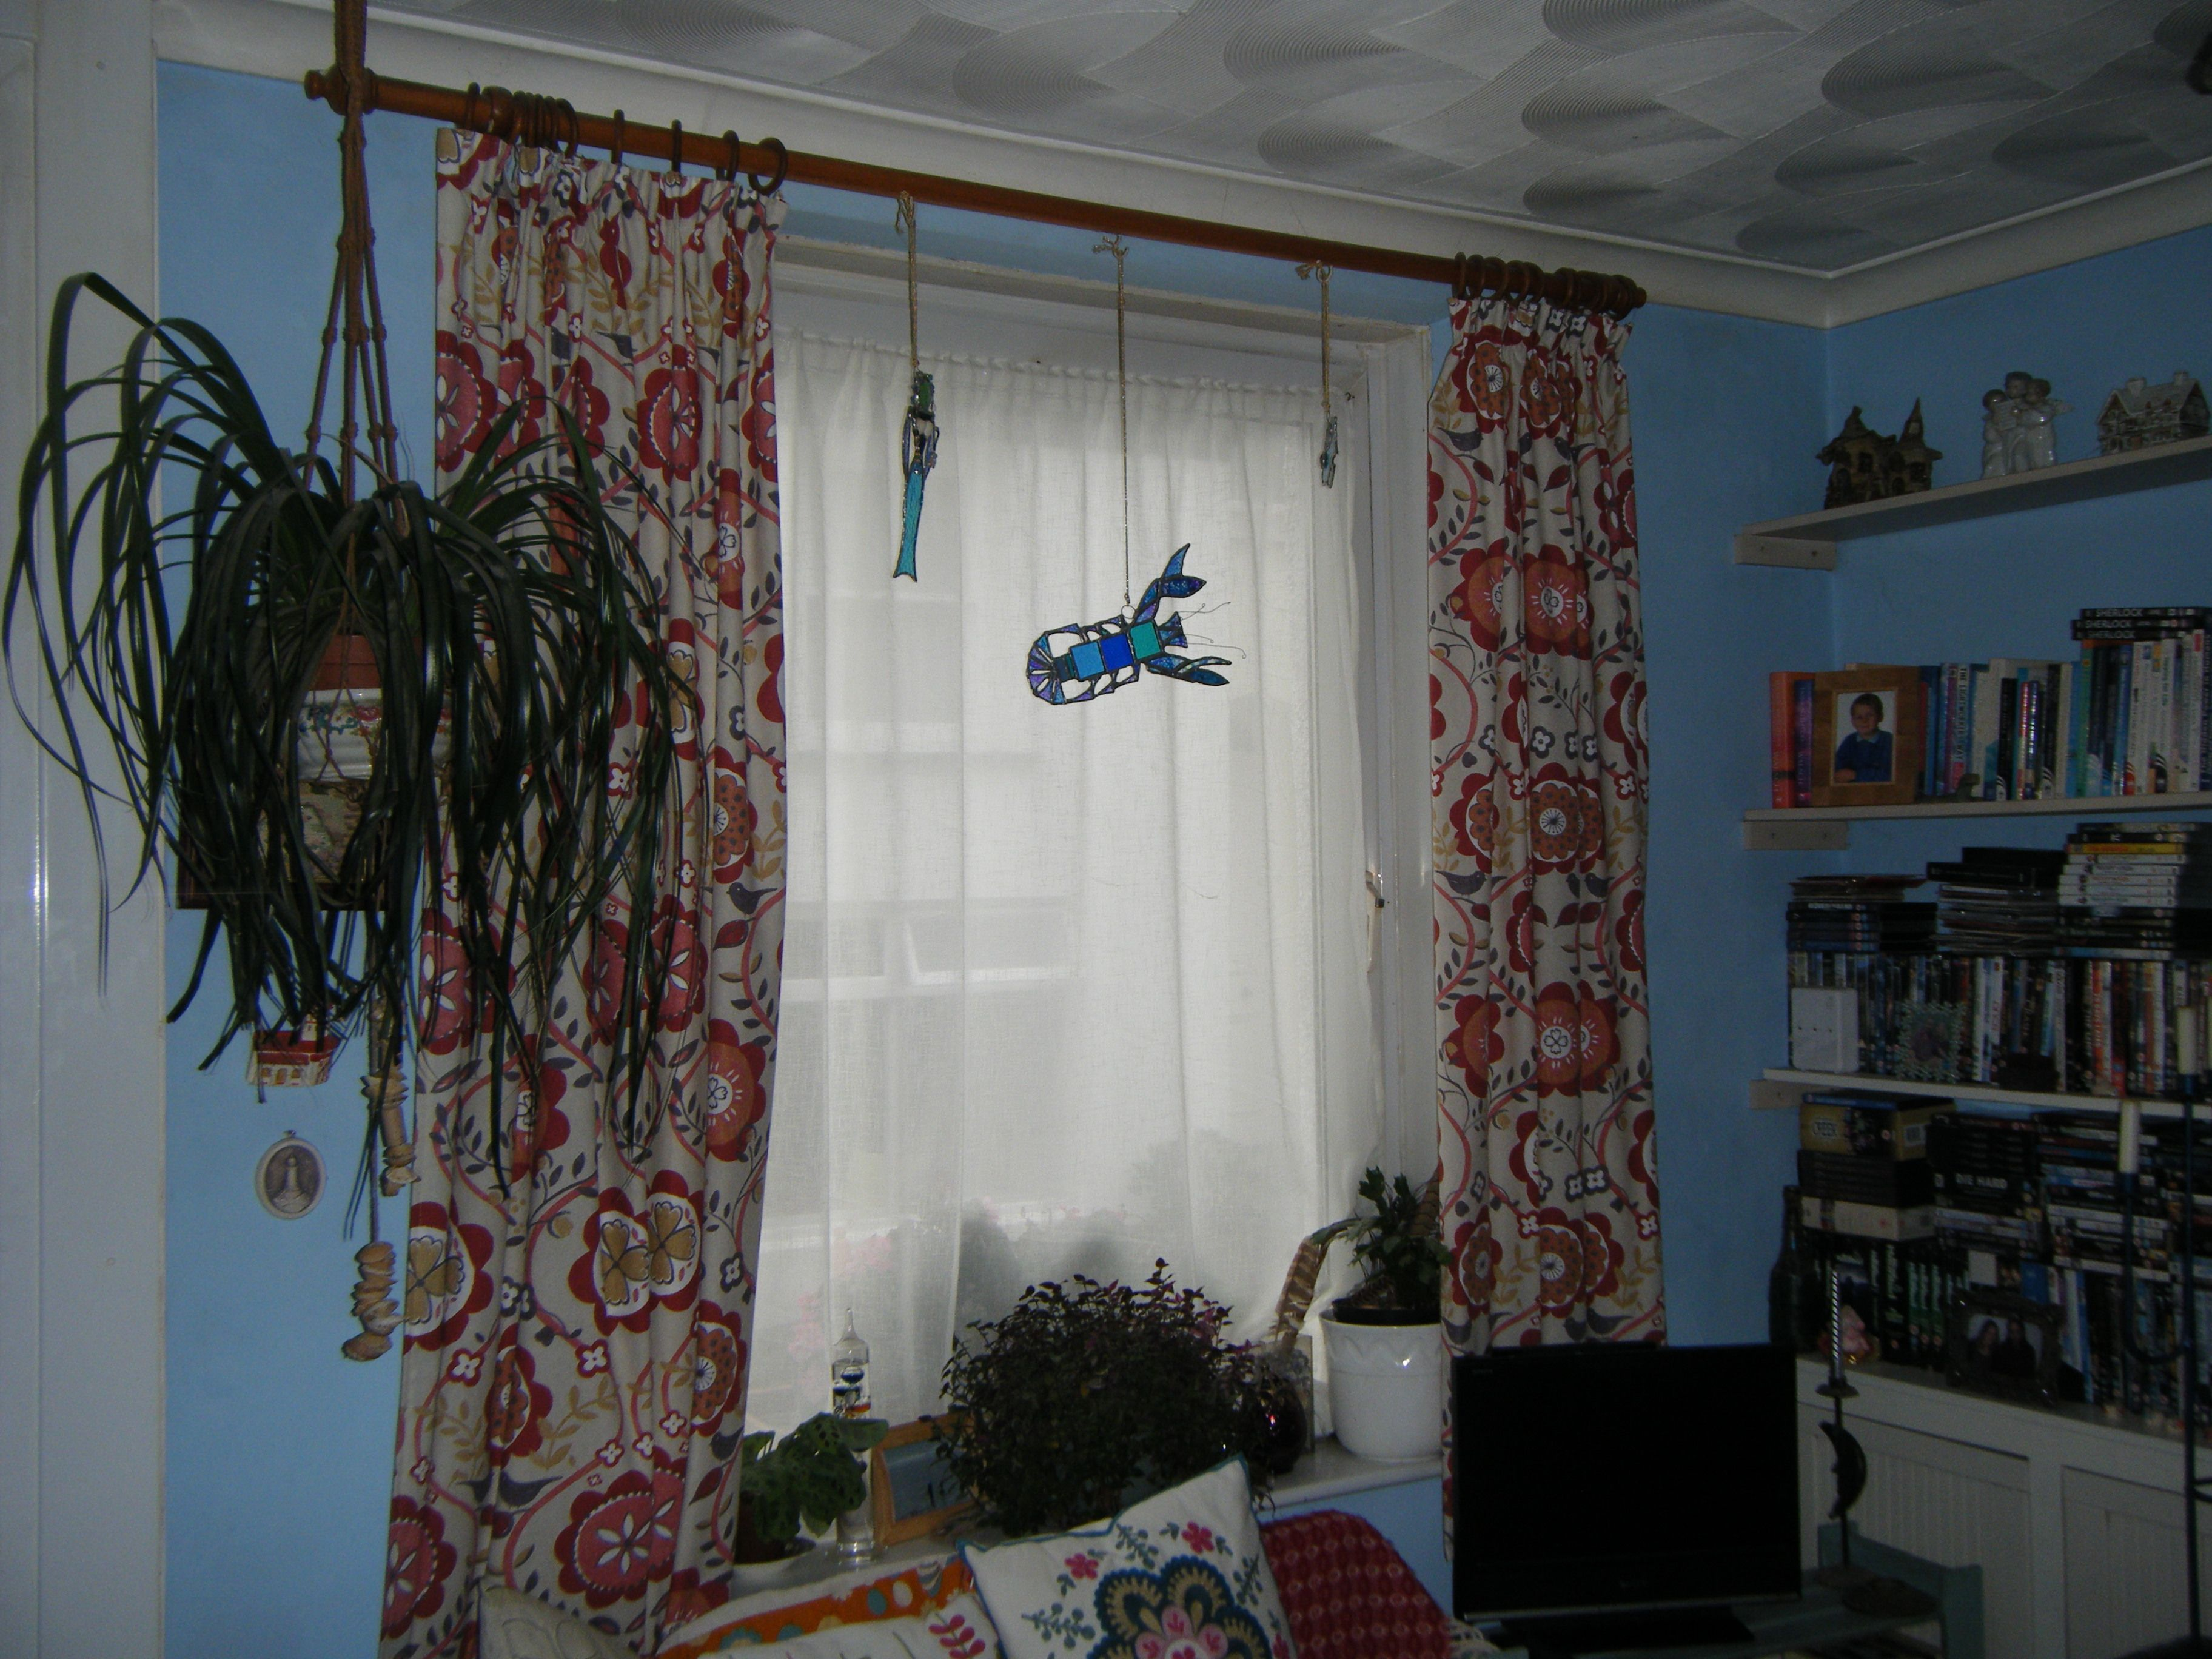 inspirational curtains entertain kitchen sheer tailored curious wonderful making valances napkins swag no from glamorous delight pleats frightening emelia with fan burlap momentous yellow valance wood curtain homemade size v window full super of grommet